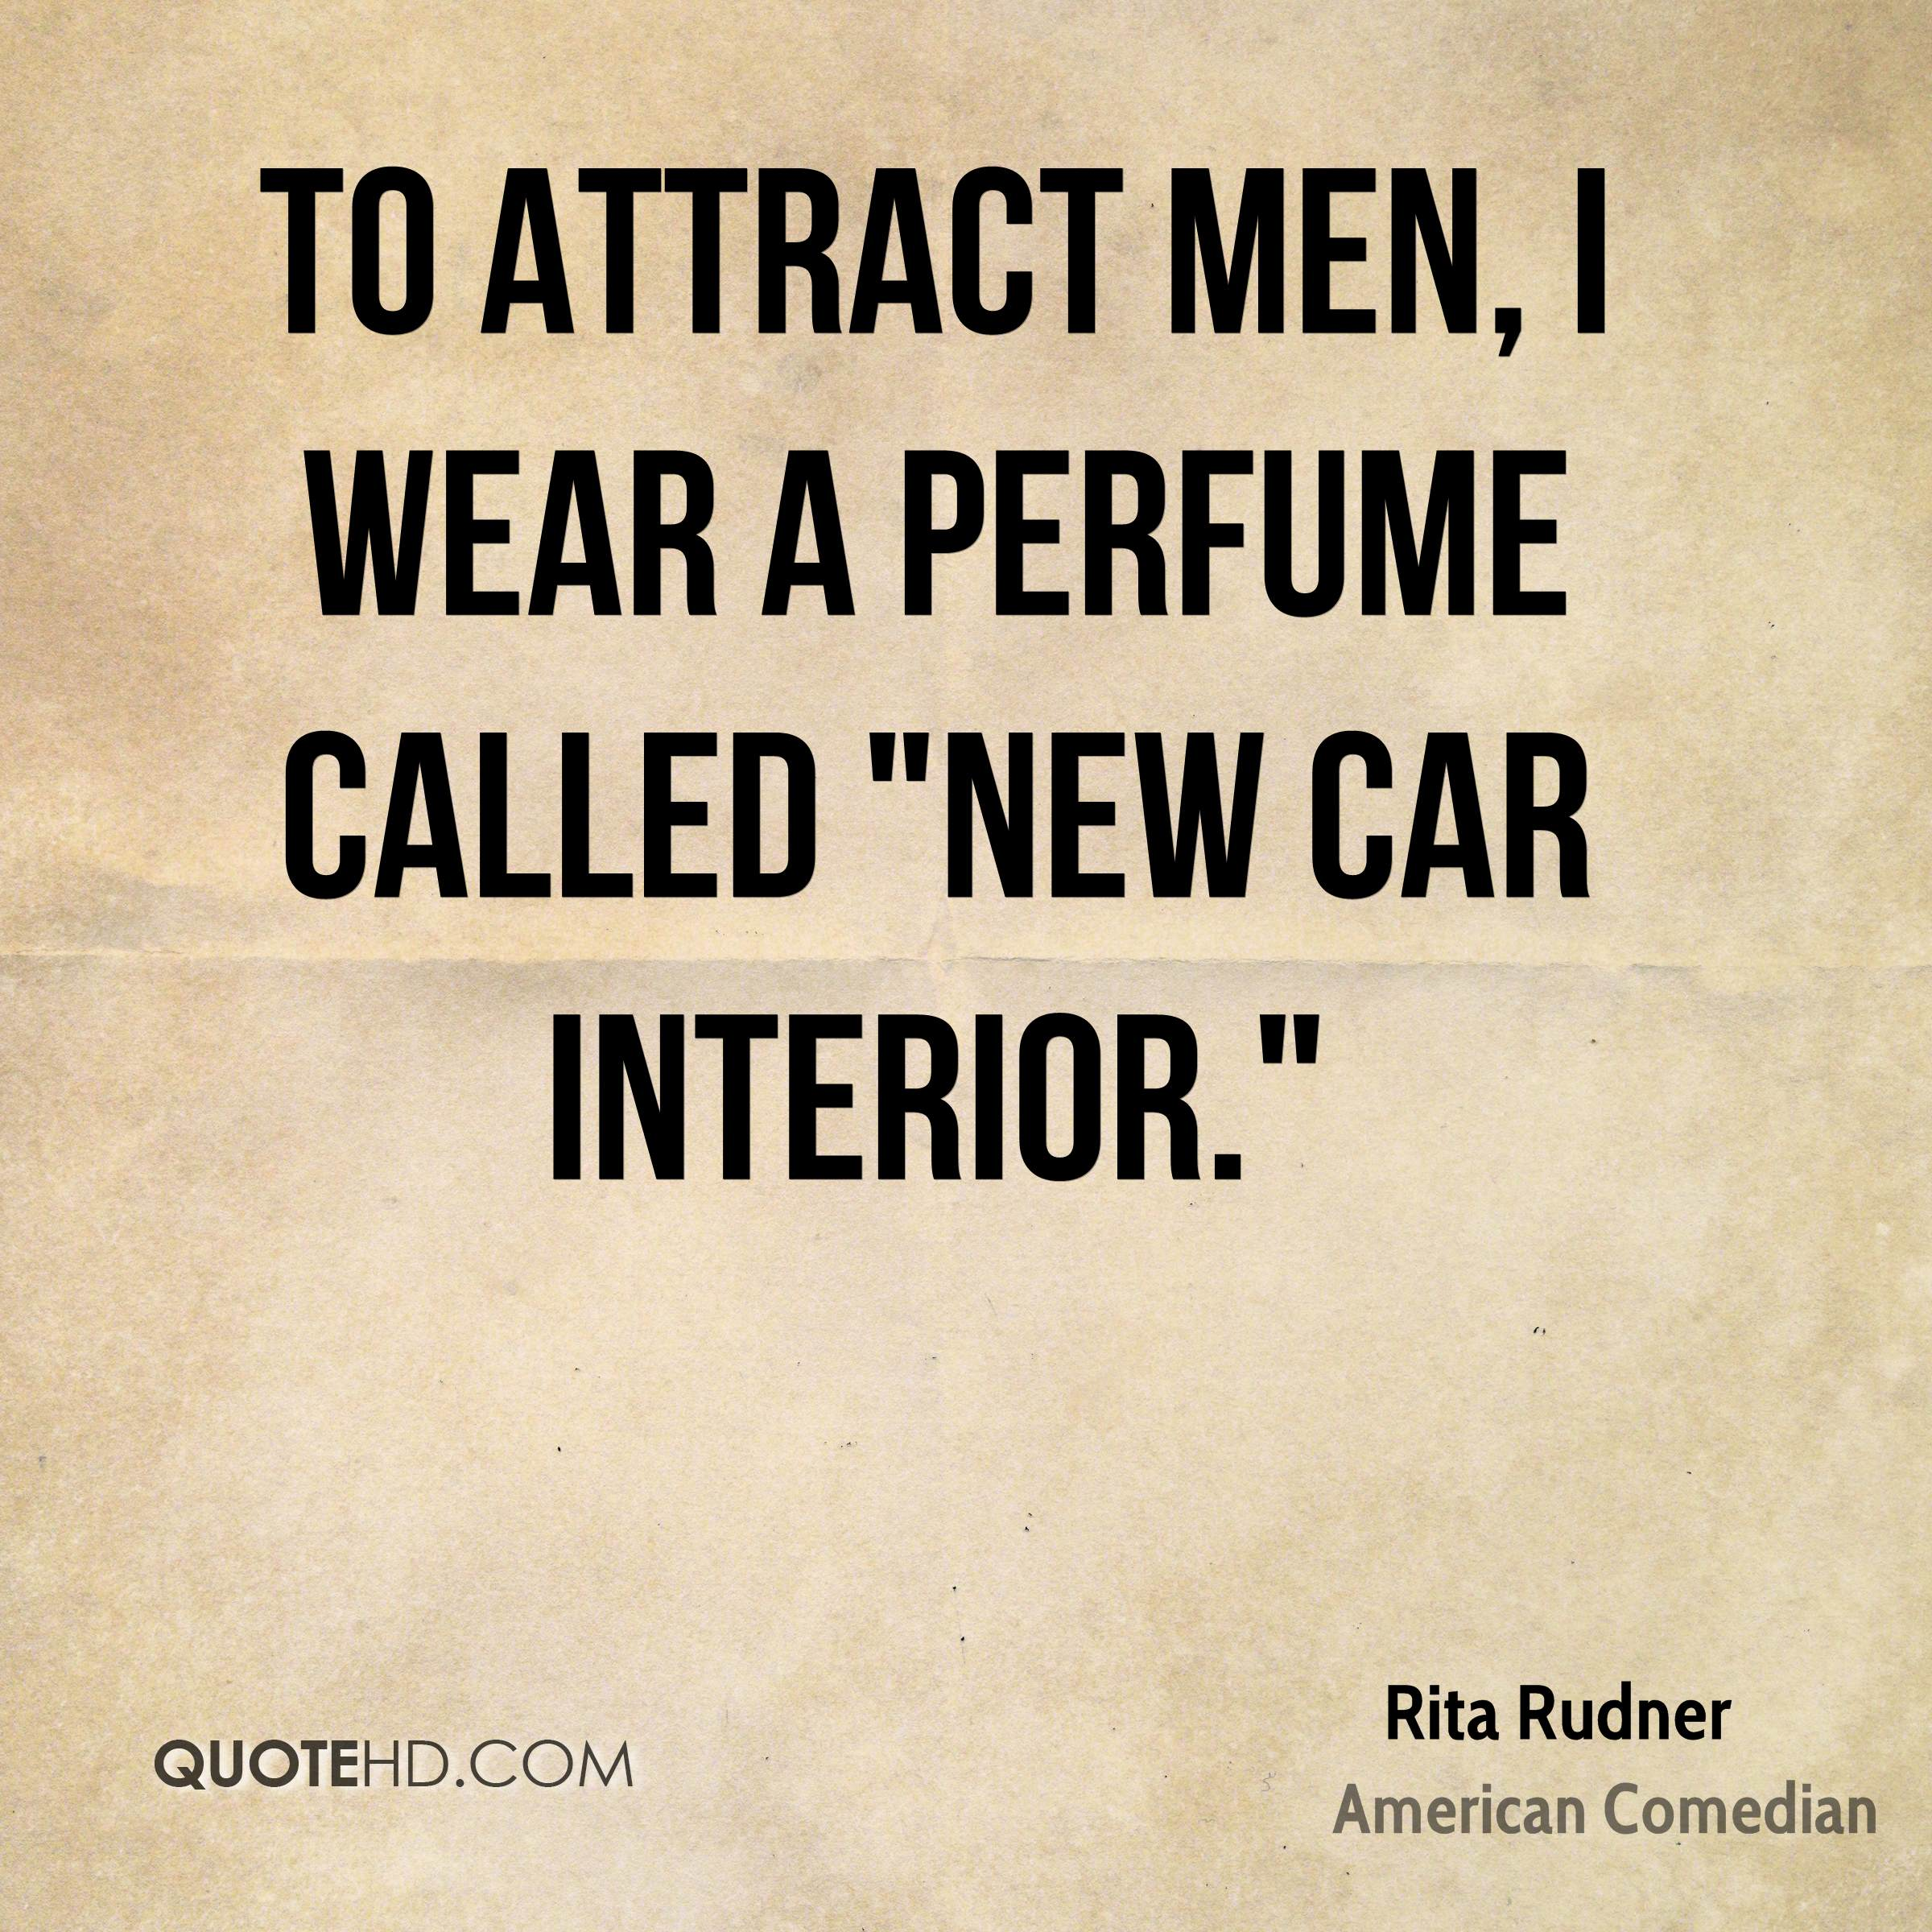 Quotes About Men Rita Rudner Men Quotes  Quotehd